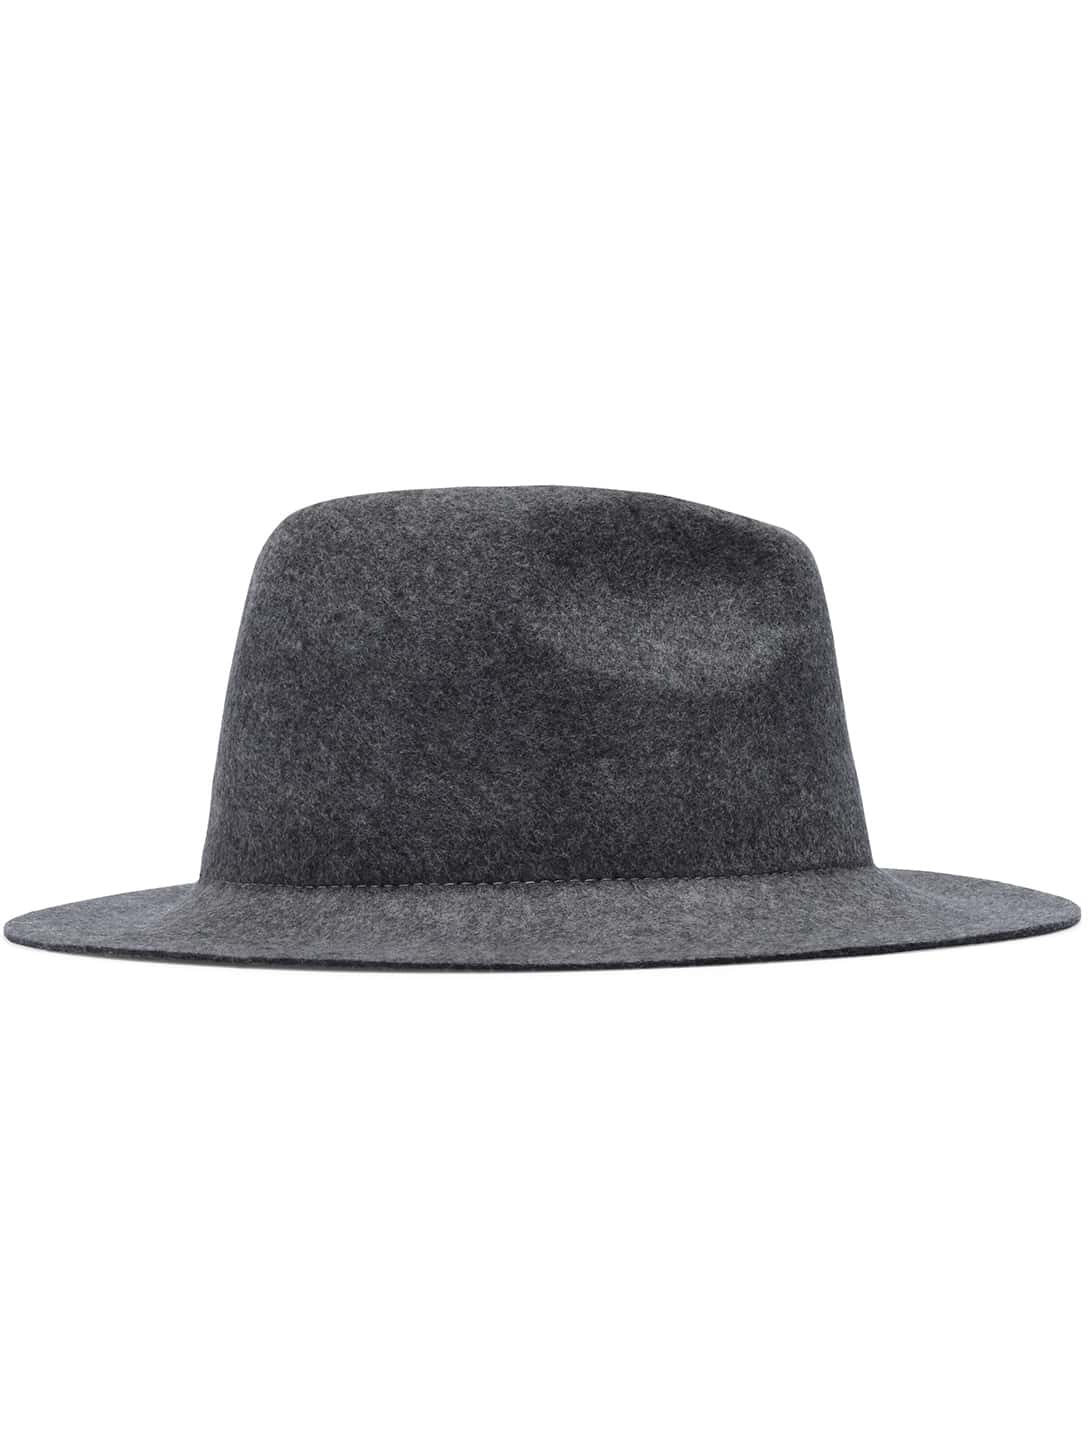 Grey Casual Round Oversize Hat